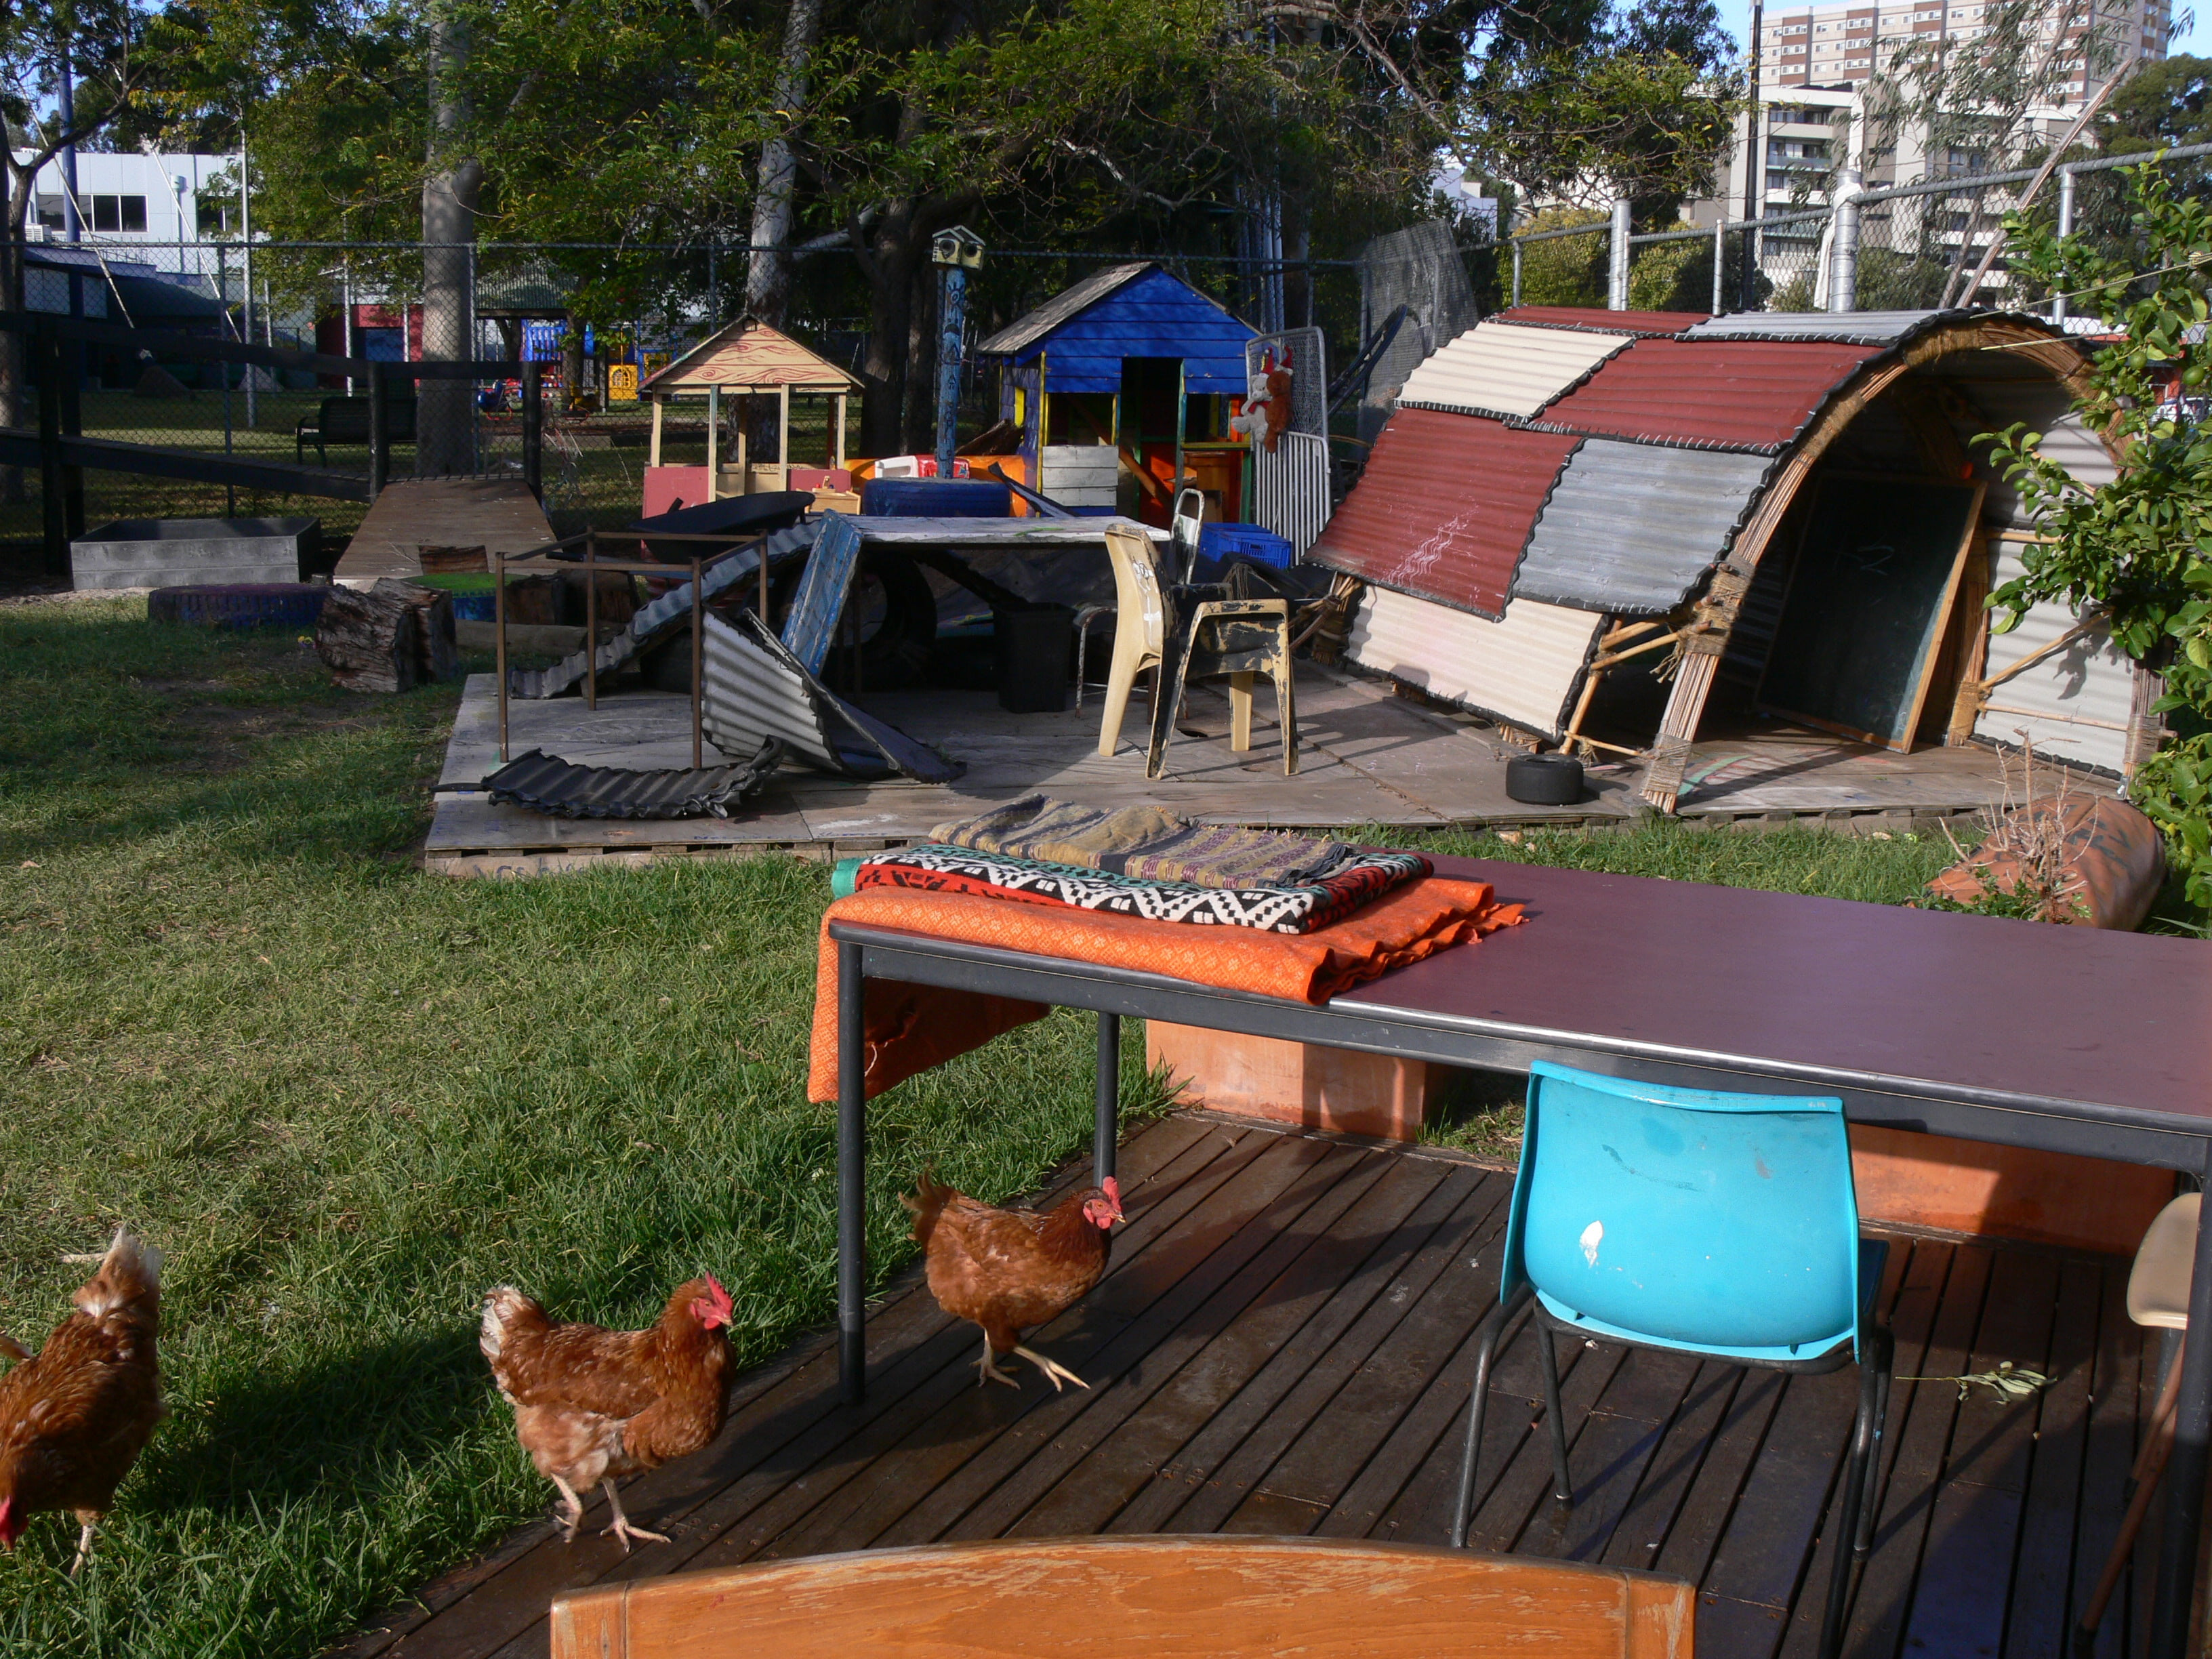 What a great backyard! Chooks and all!